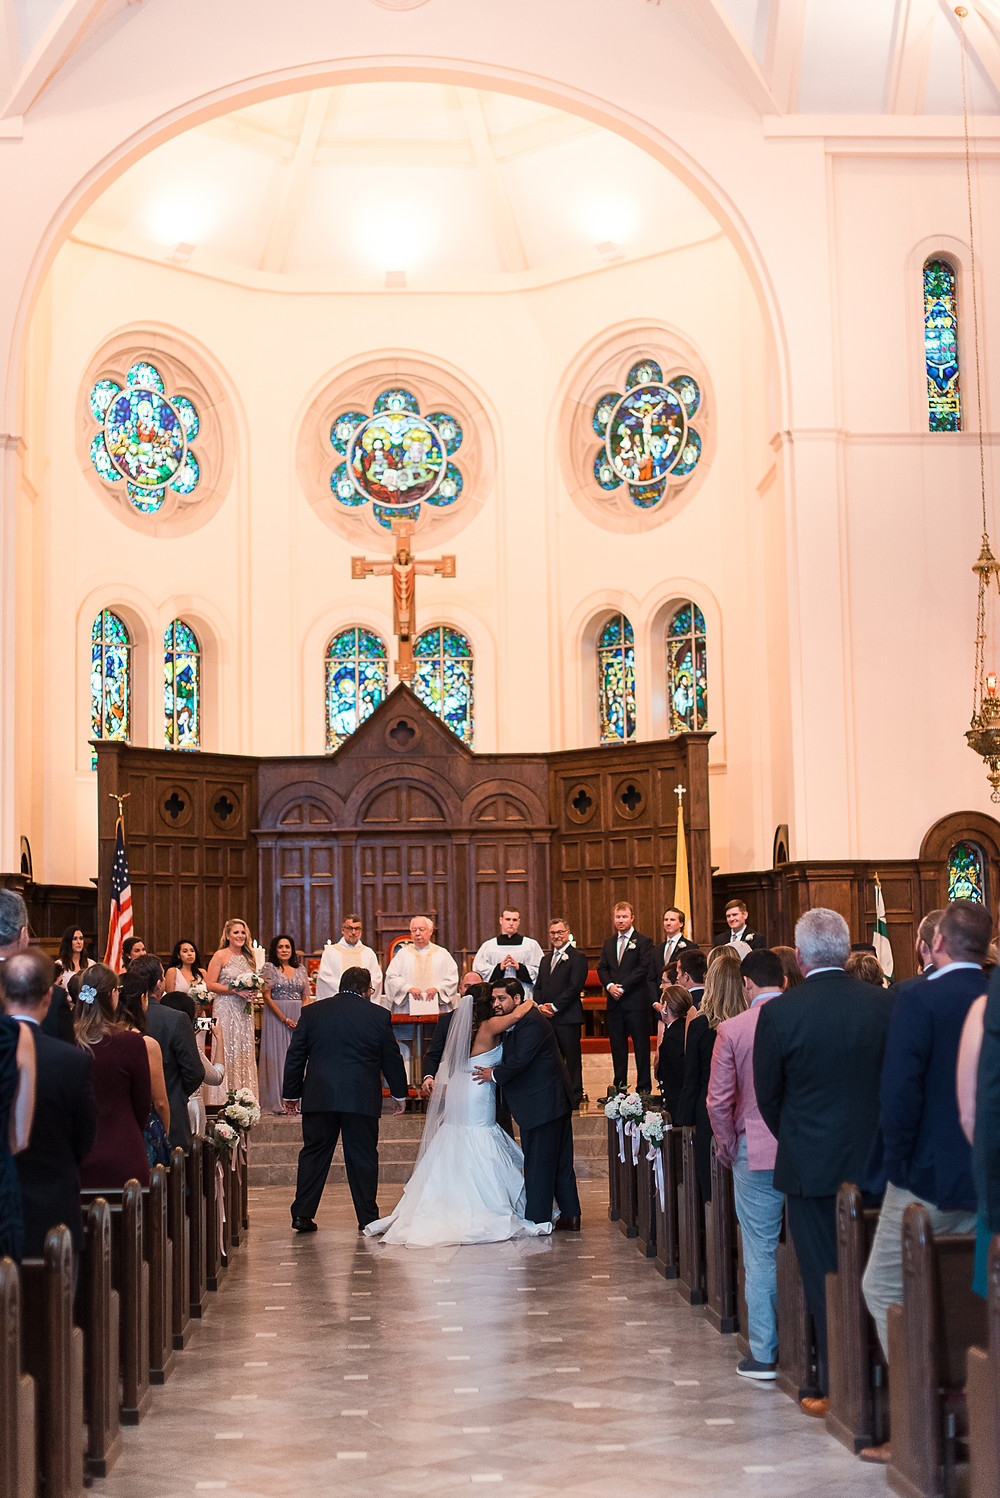 bride and groom getting married at HOLY SPIRIT CATHOLIC CHURCH WEDDING